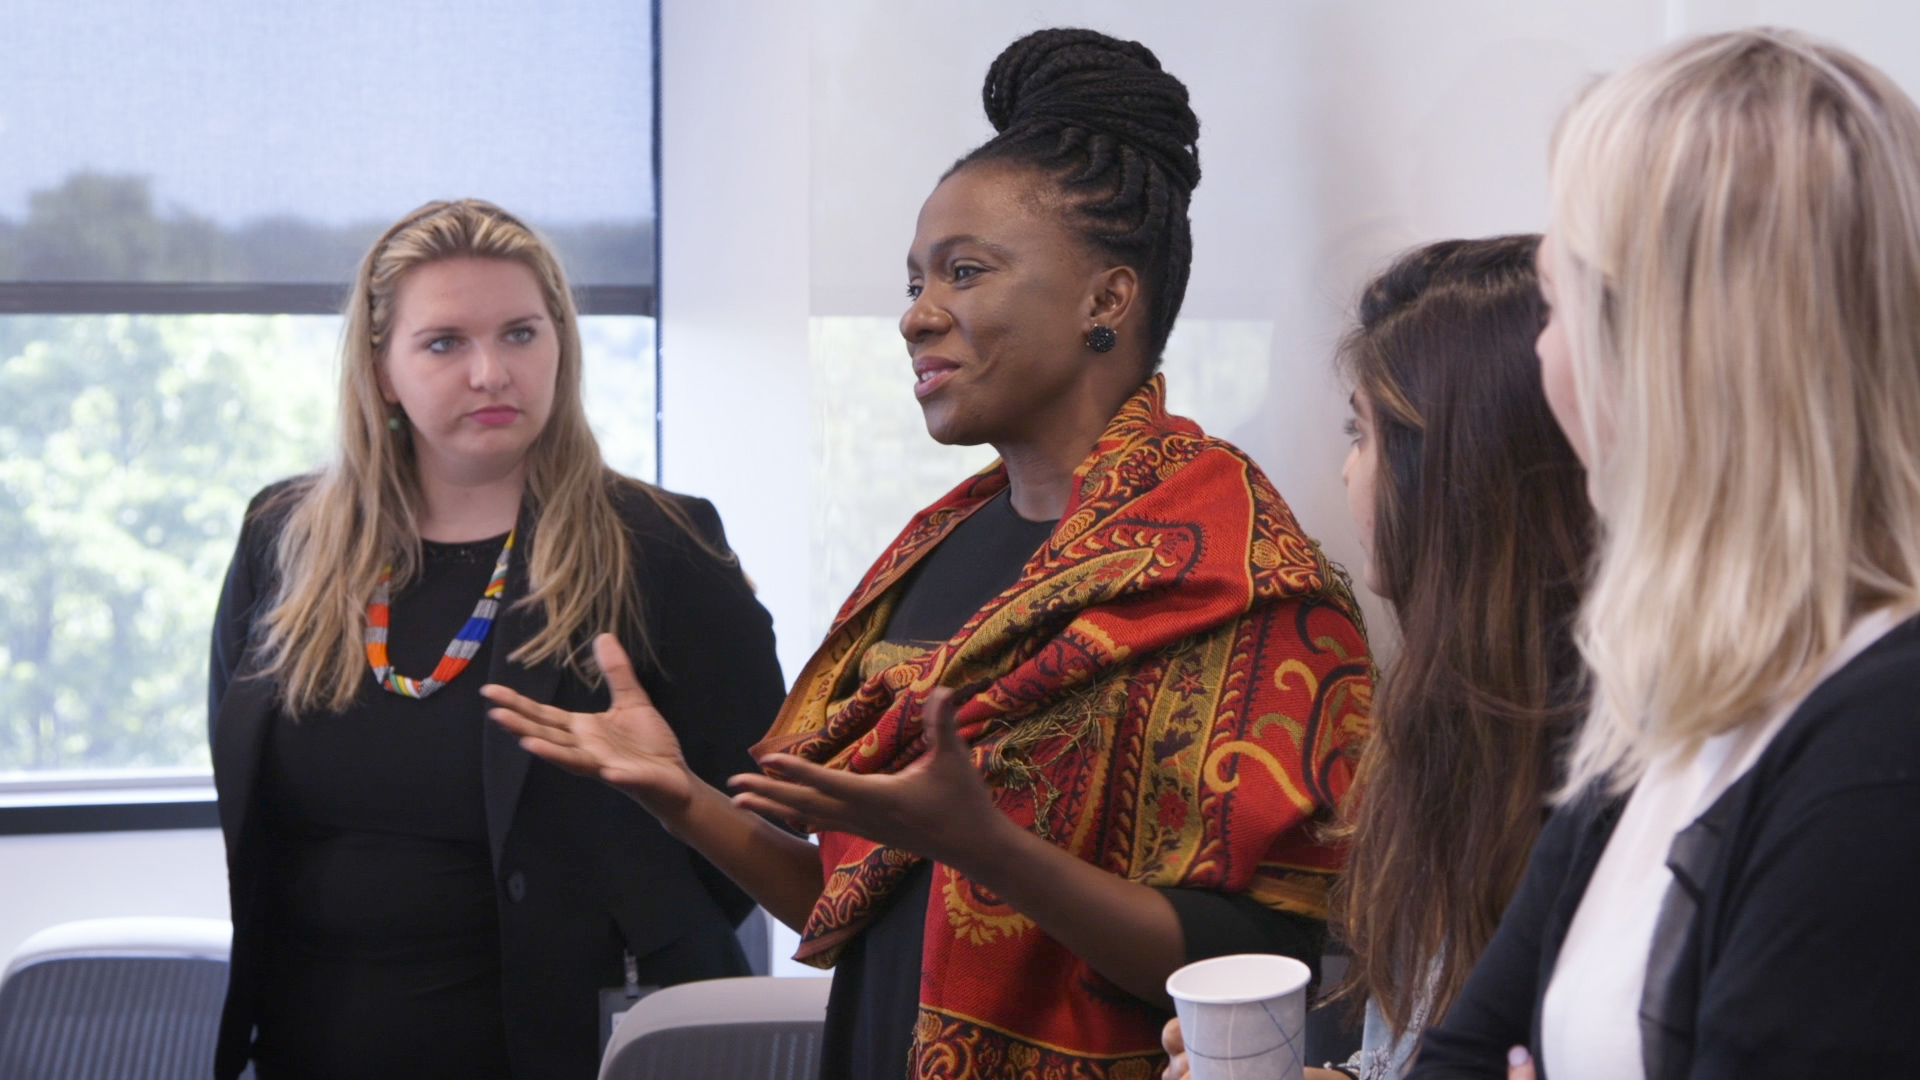 Fortune - U.S. Department of State Global Women's Mentoring Partnership